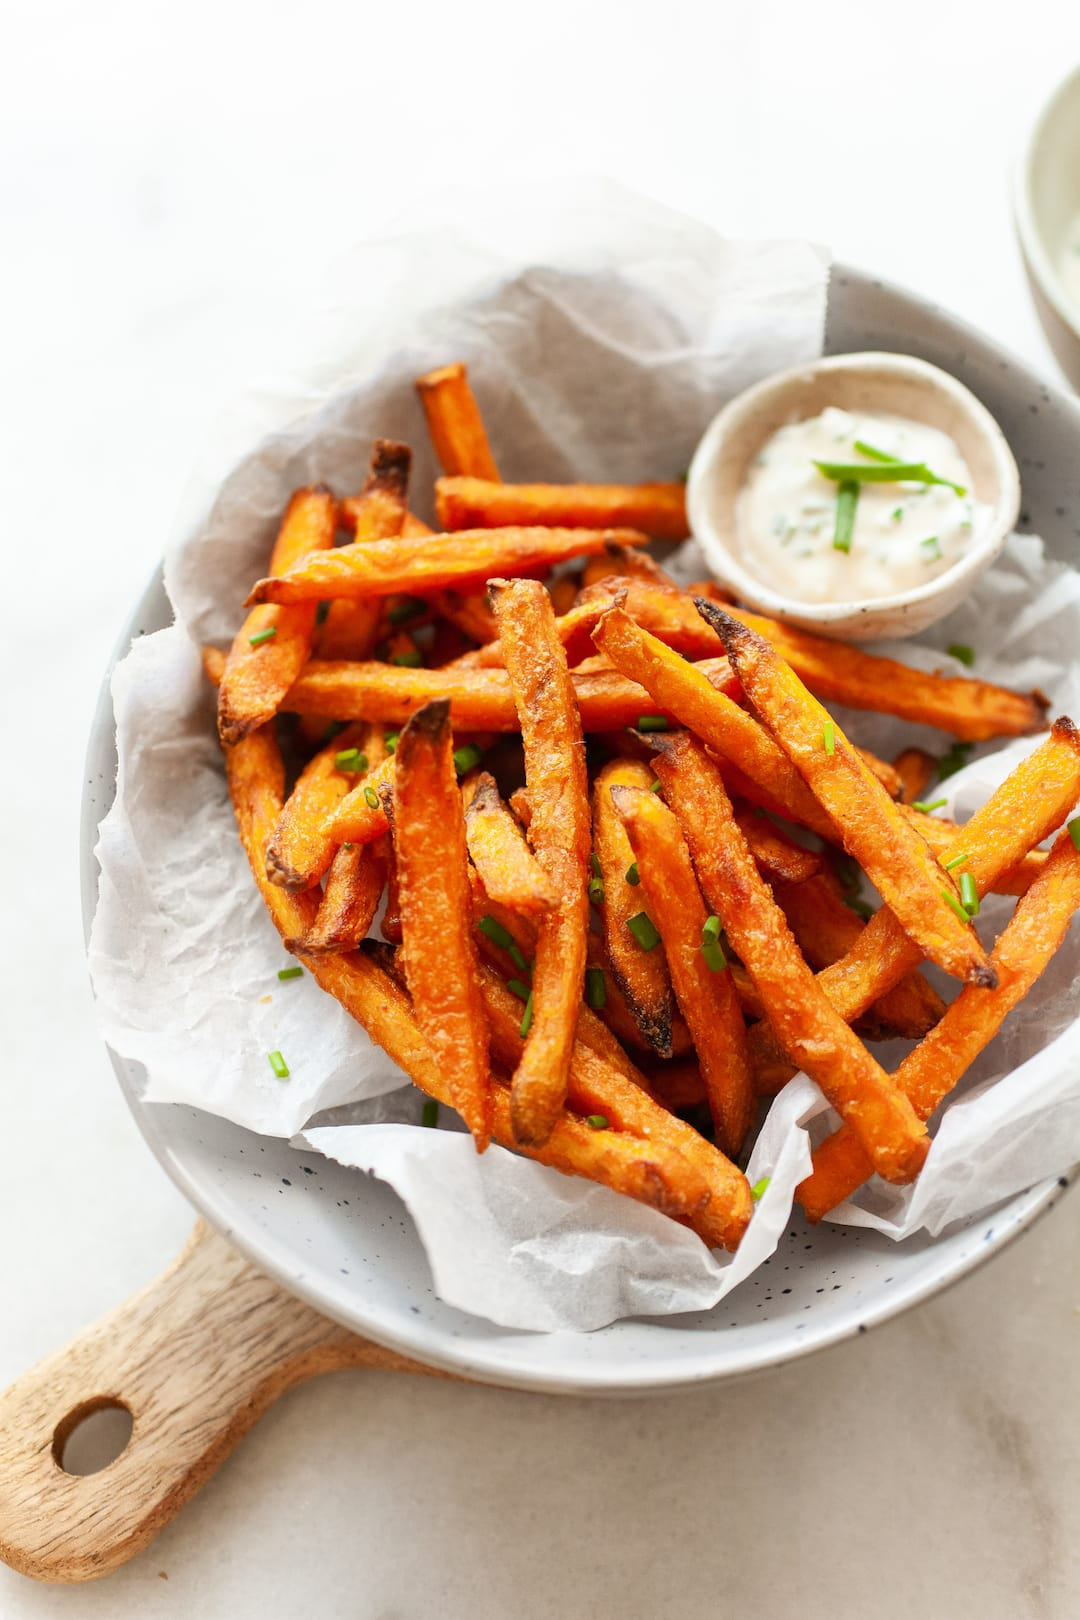 cooked from frozen sweet potato fries in a bowl with aioli dip on the side